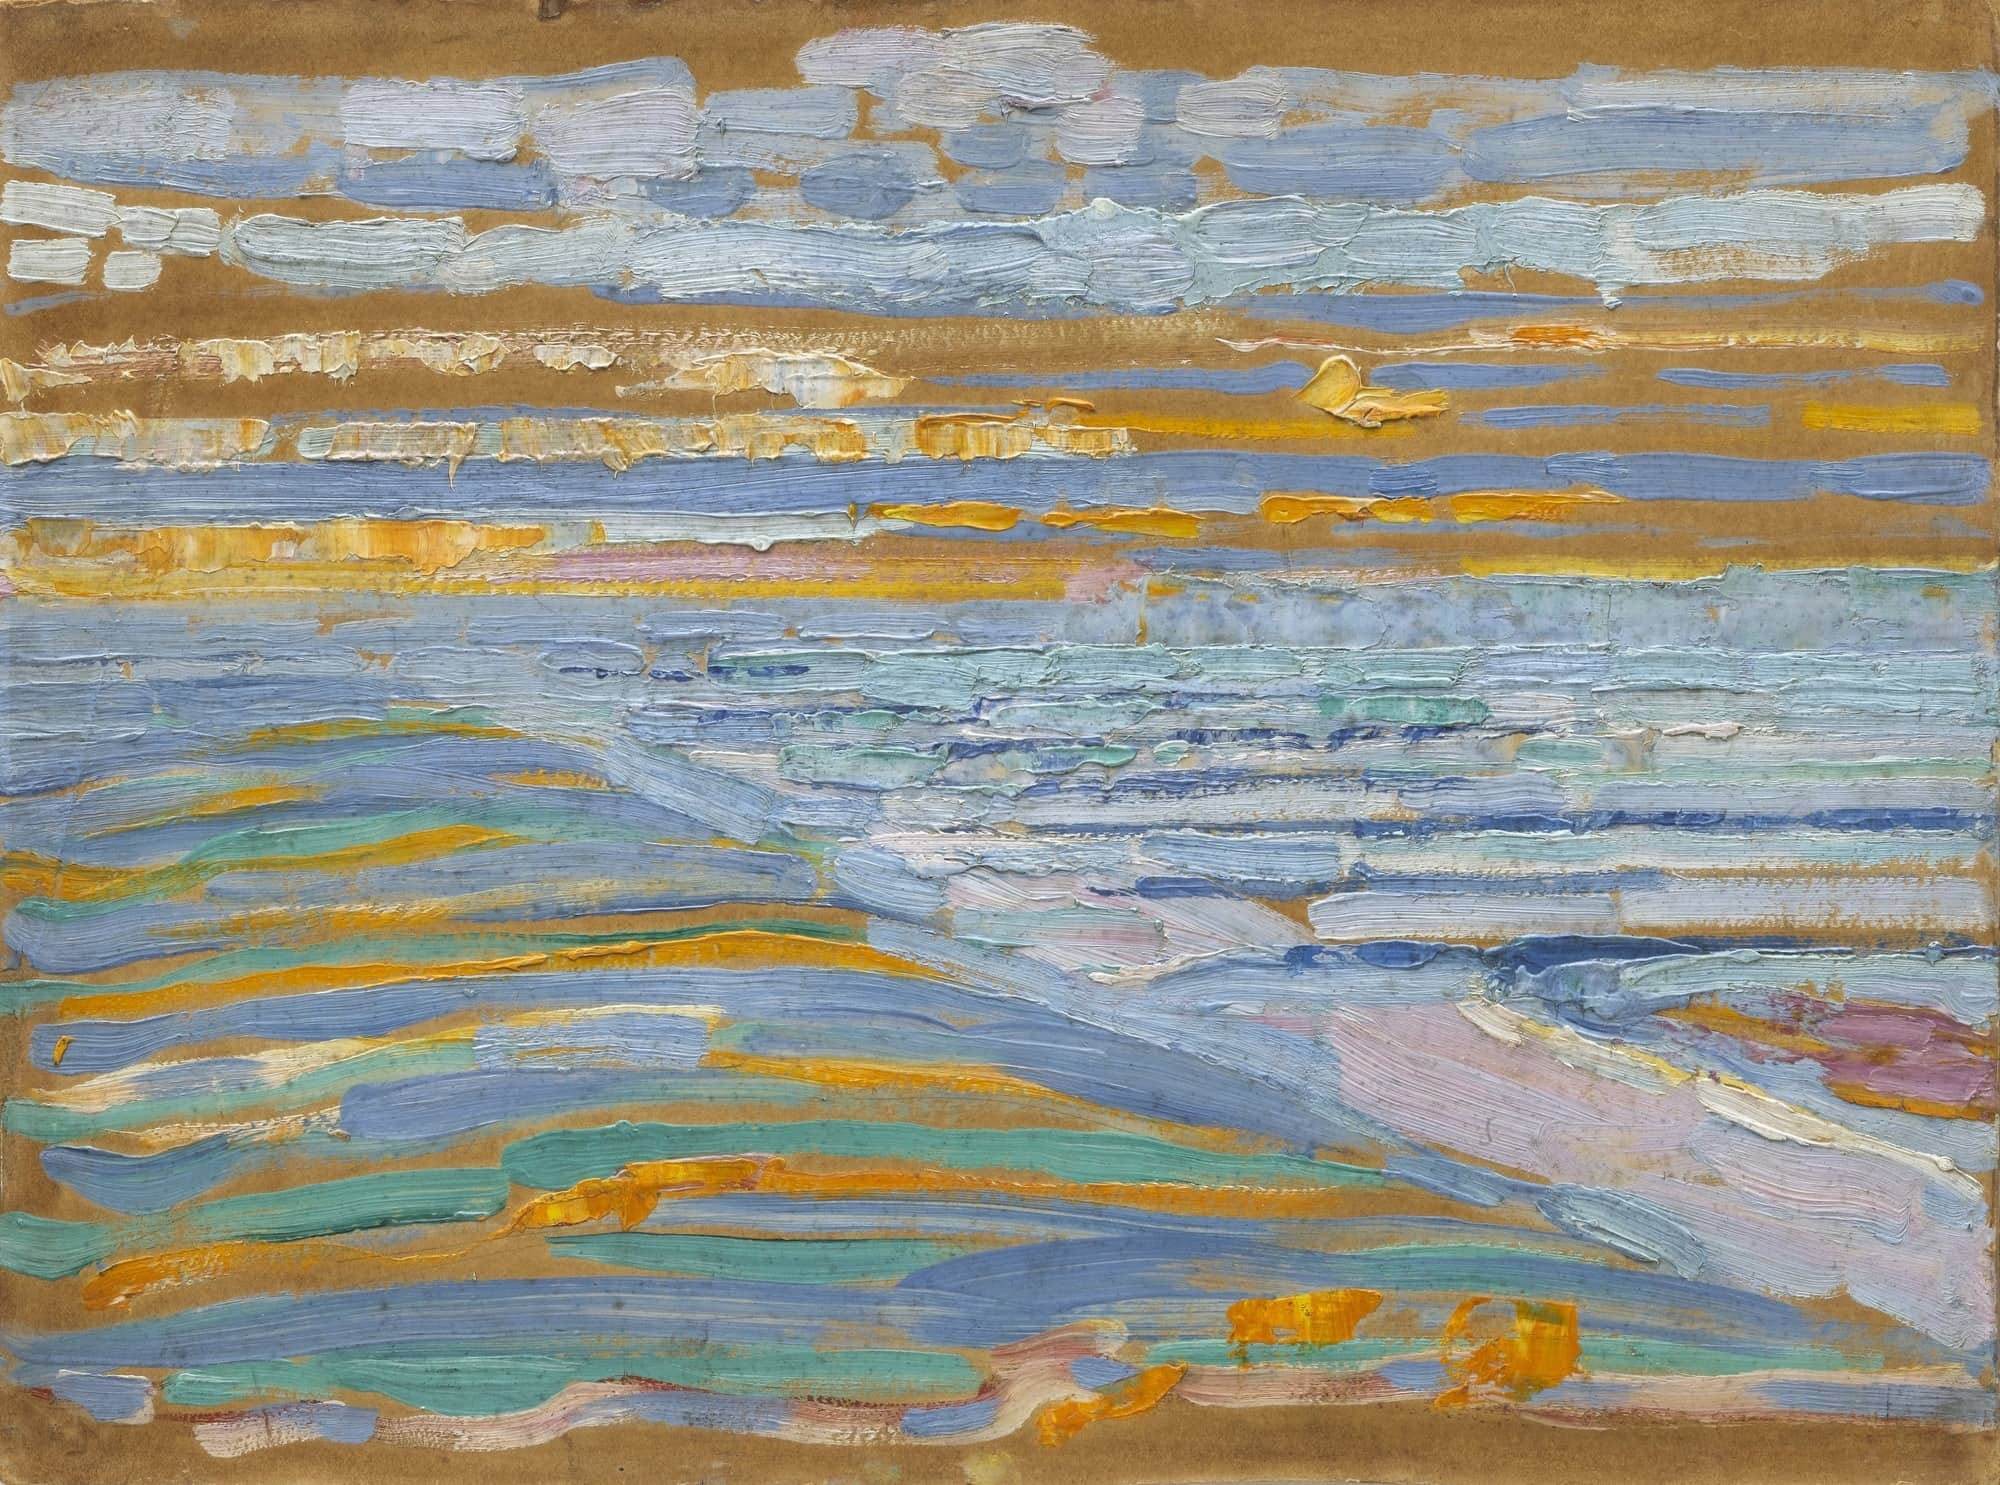 Piet_Mondrian_1909_View_from_the_Dunes_with_Beach_and_Piers_Domburg_MoMA.jpg#asset:5138